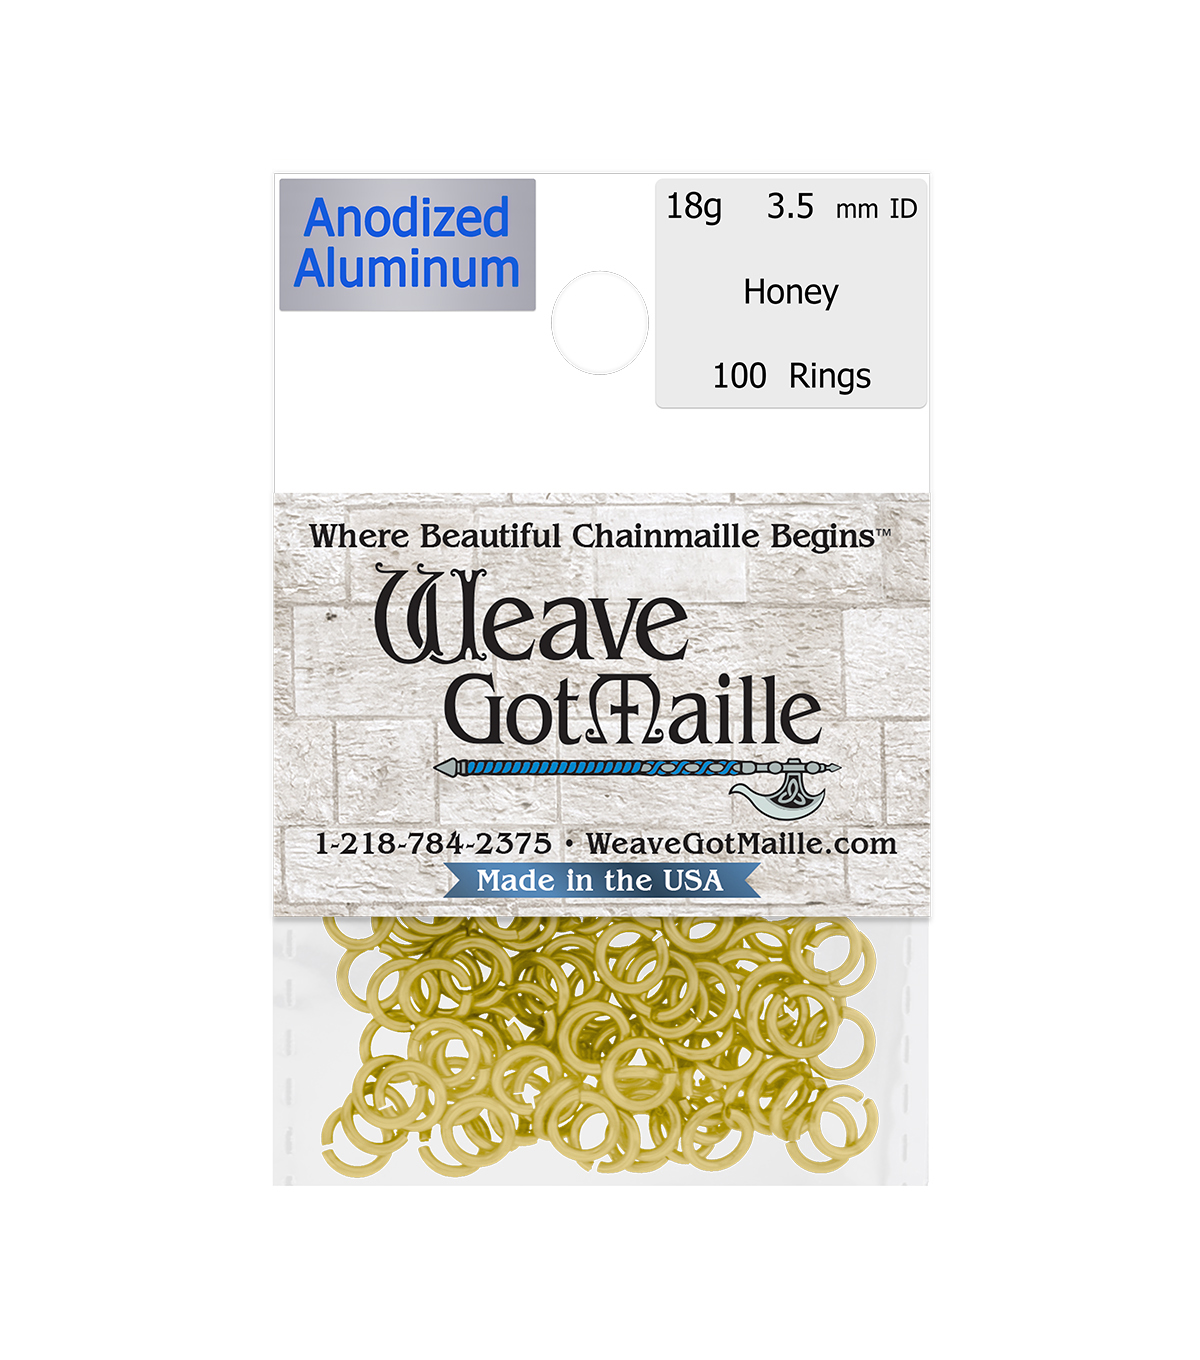 Weave Got Maille Pack of 100 3.5 mm Jump Rings-Honey